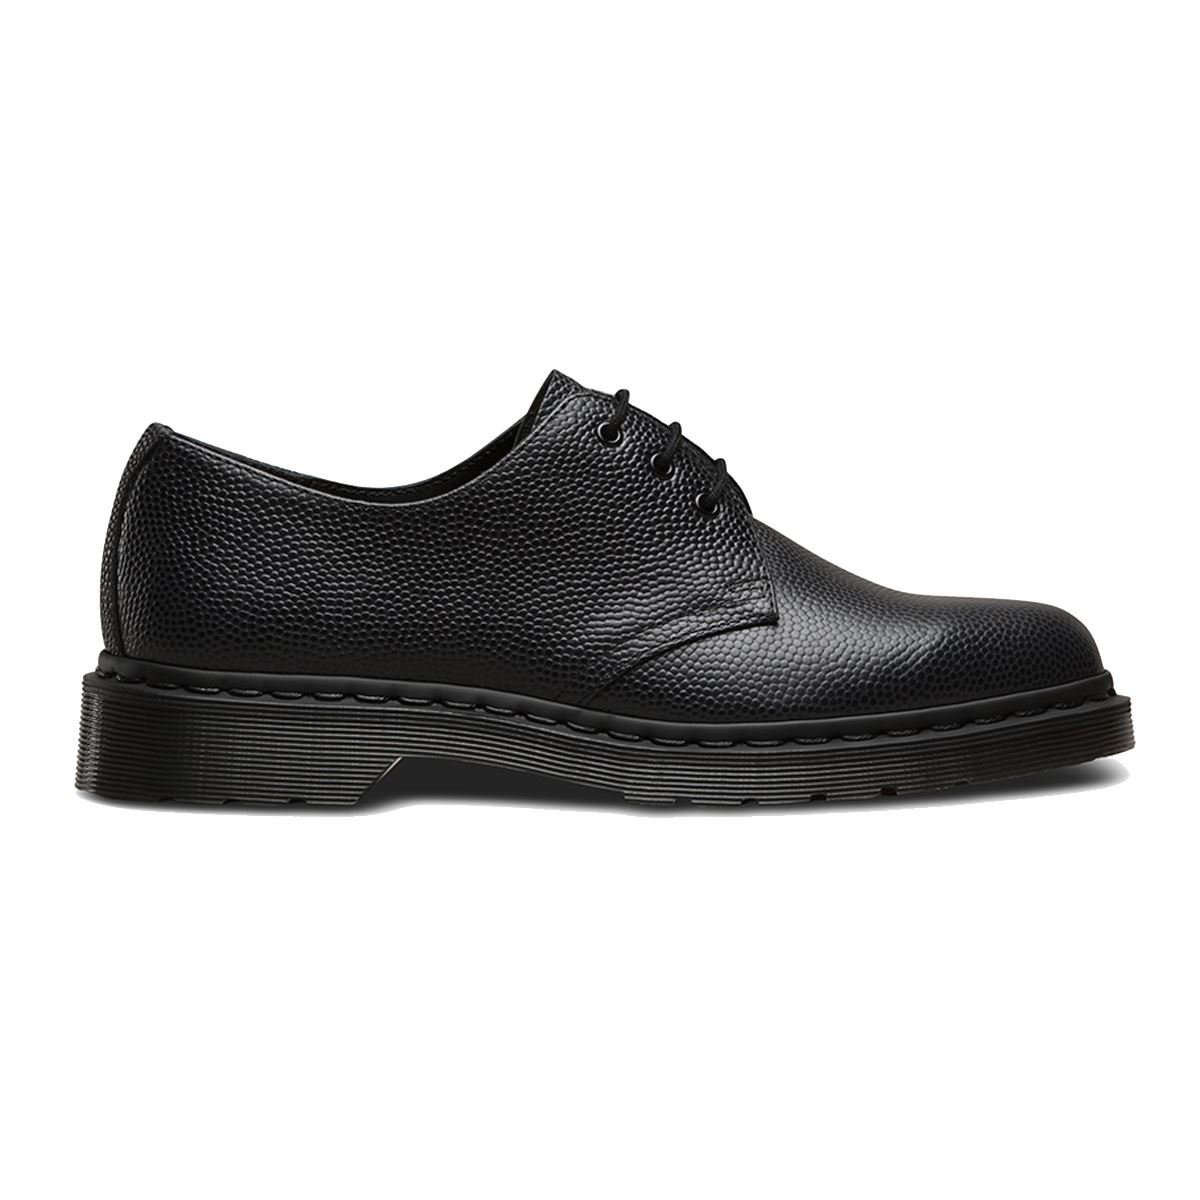 Dr. Martens Men's 1461 3-Eye Shoe Black Pebble 8 UK